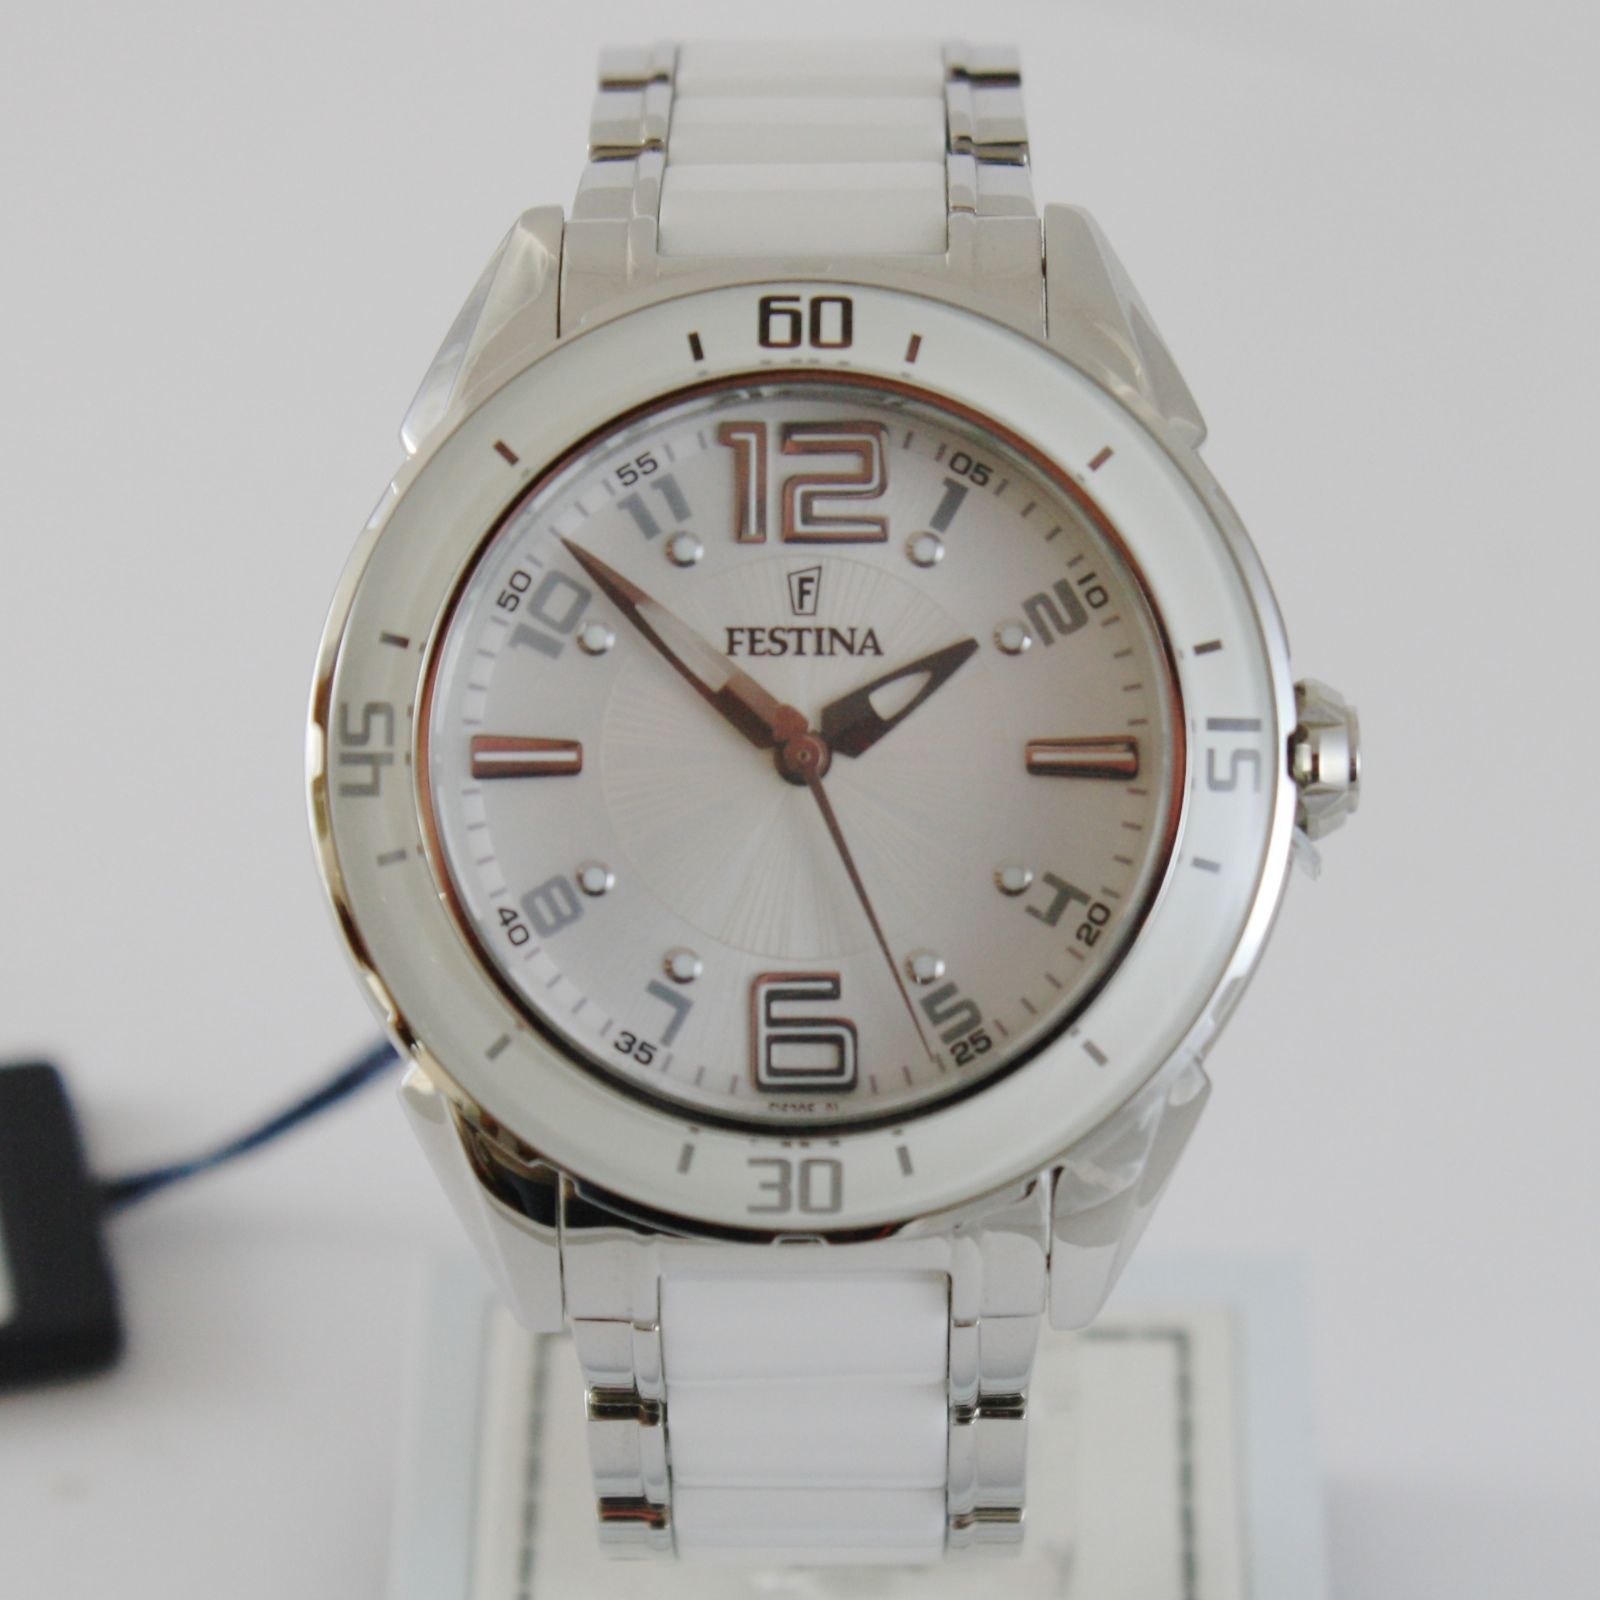 FESTINA WATCH QUARTZ MOVEMENT, 43 MM CASE, 3 ATM, WHITE FACE, WHITE CERAMIC